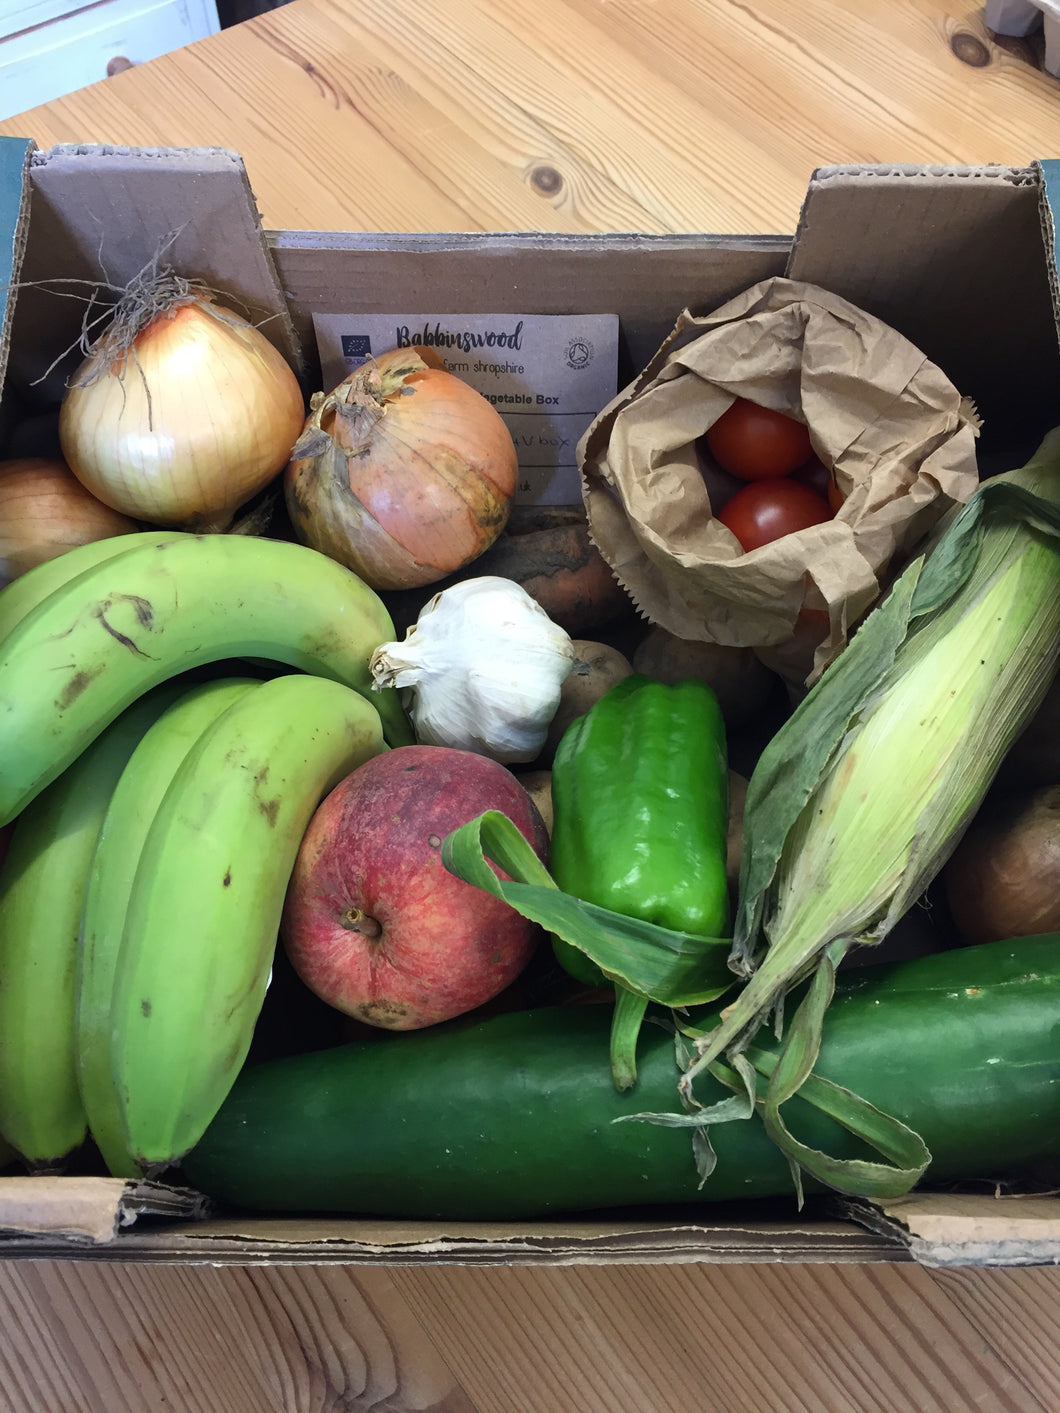 Babbinswood Organic Extra Small Fruit and Veg Box - Local Customers Only